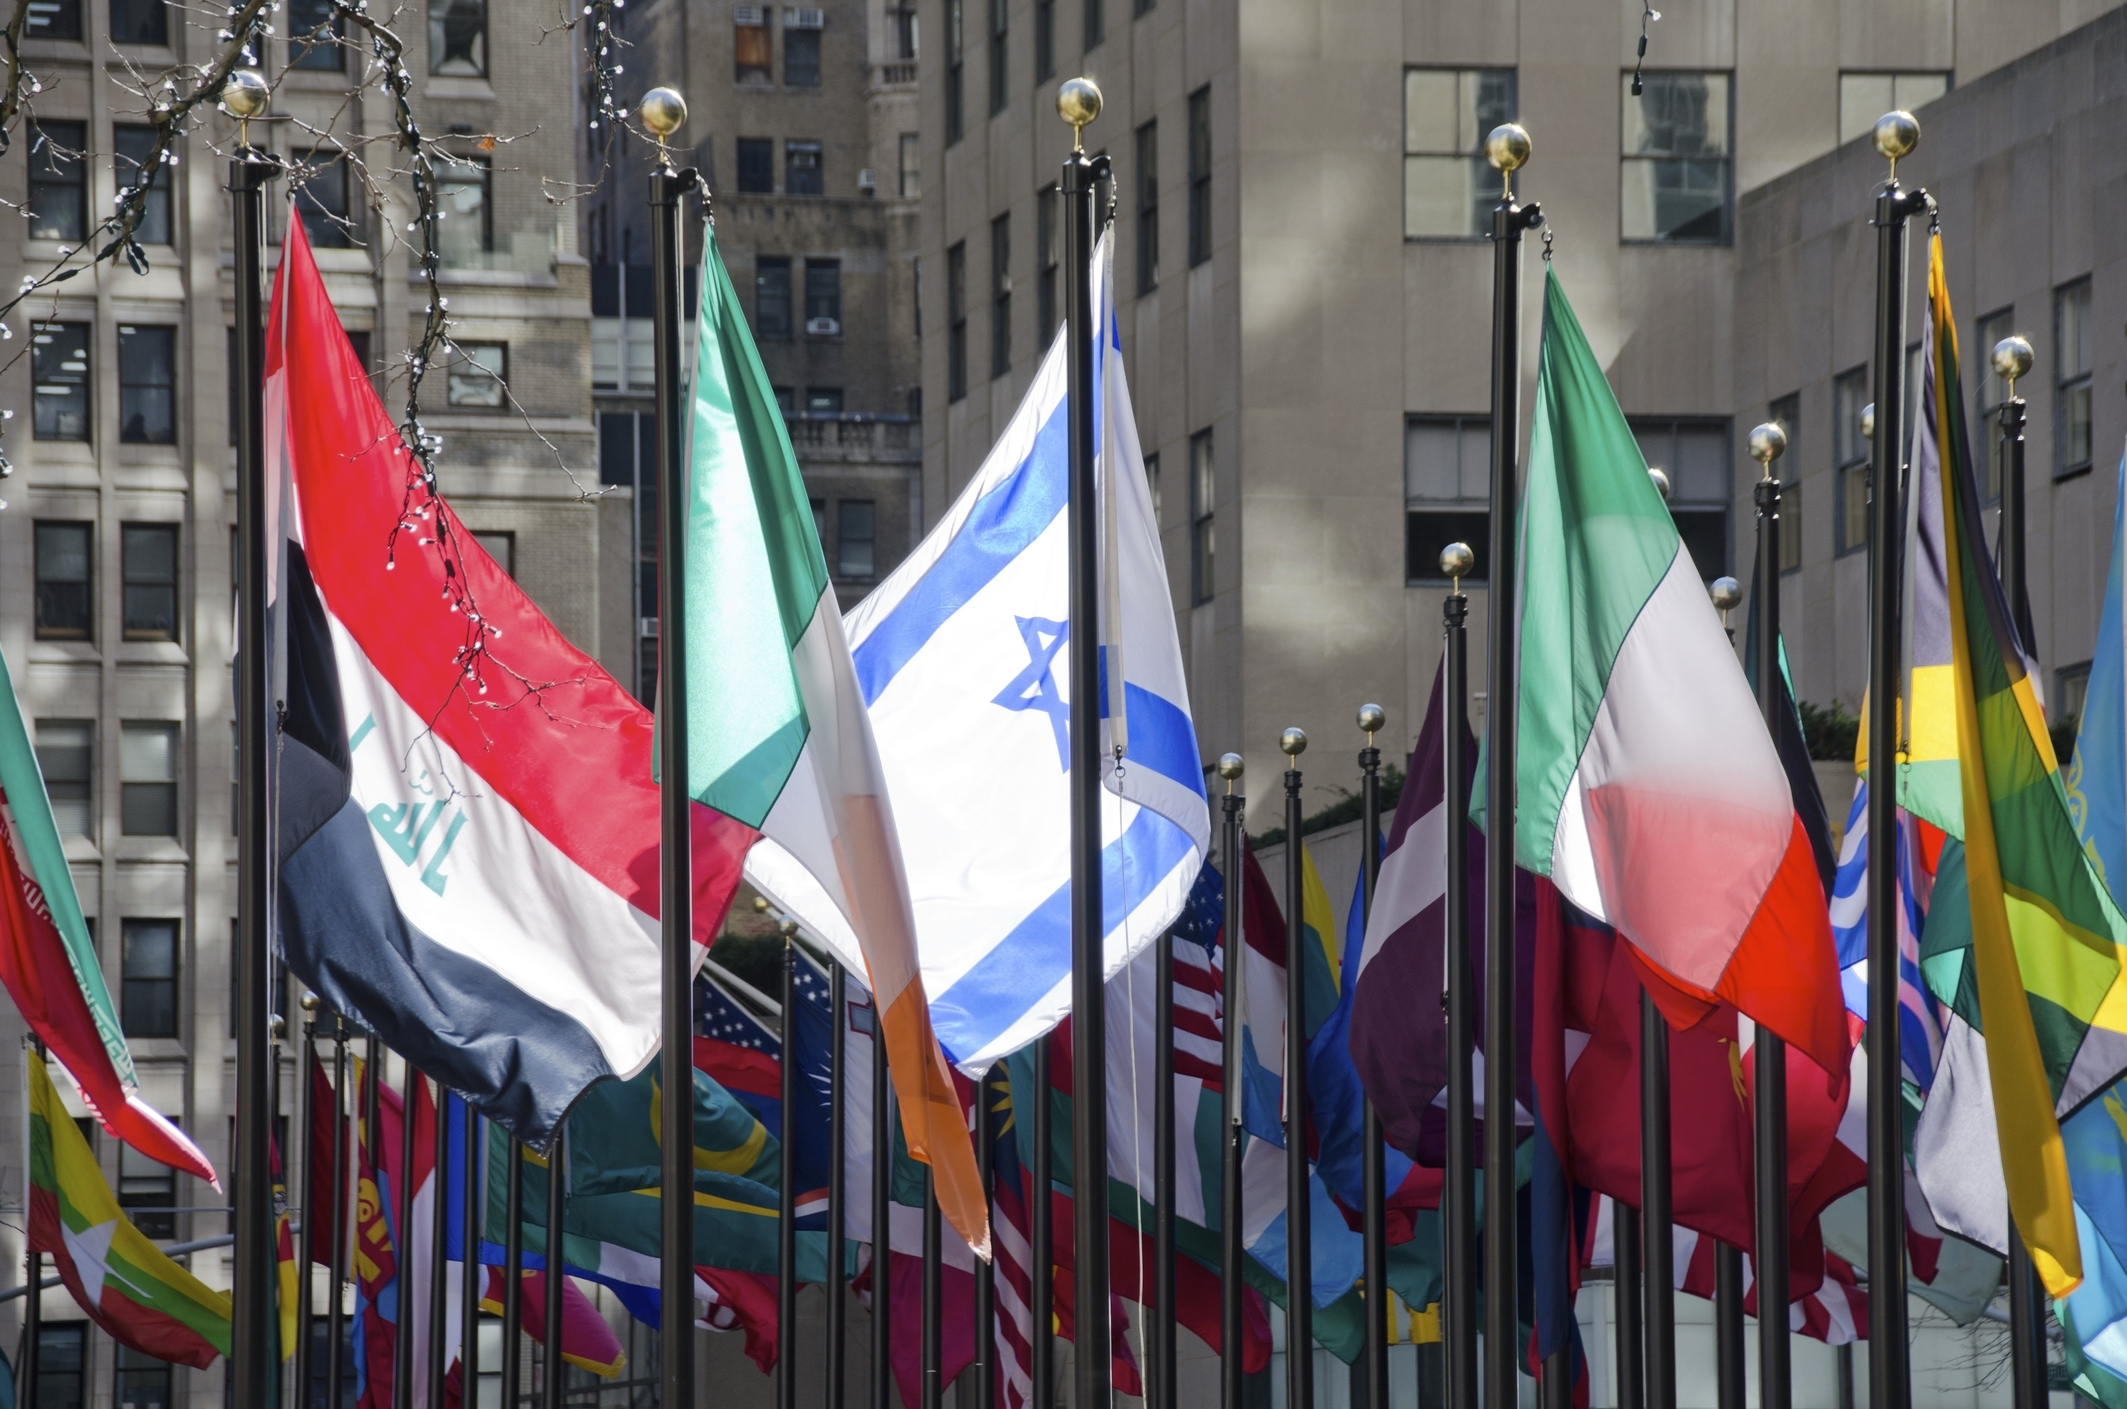 Flags at Rockefeller Cener